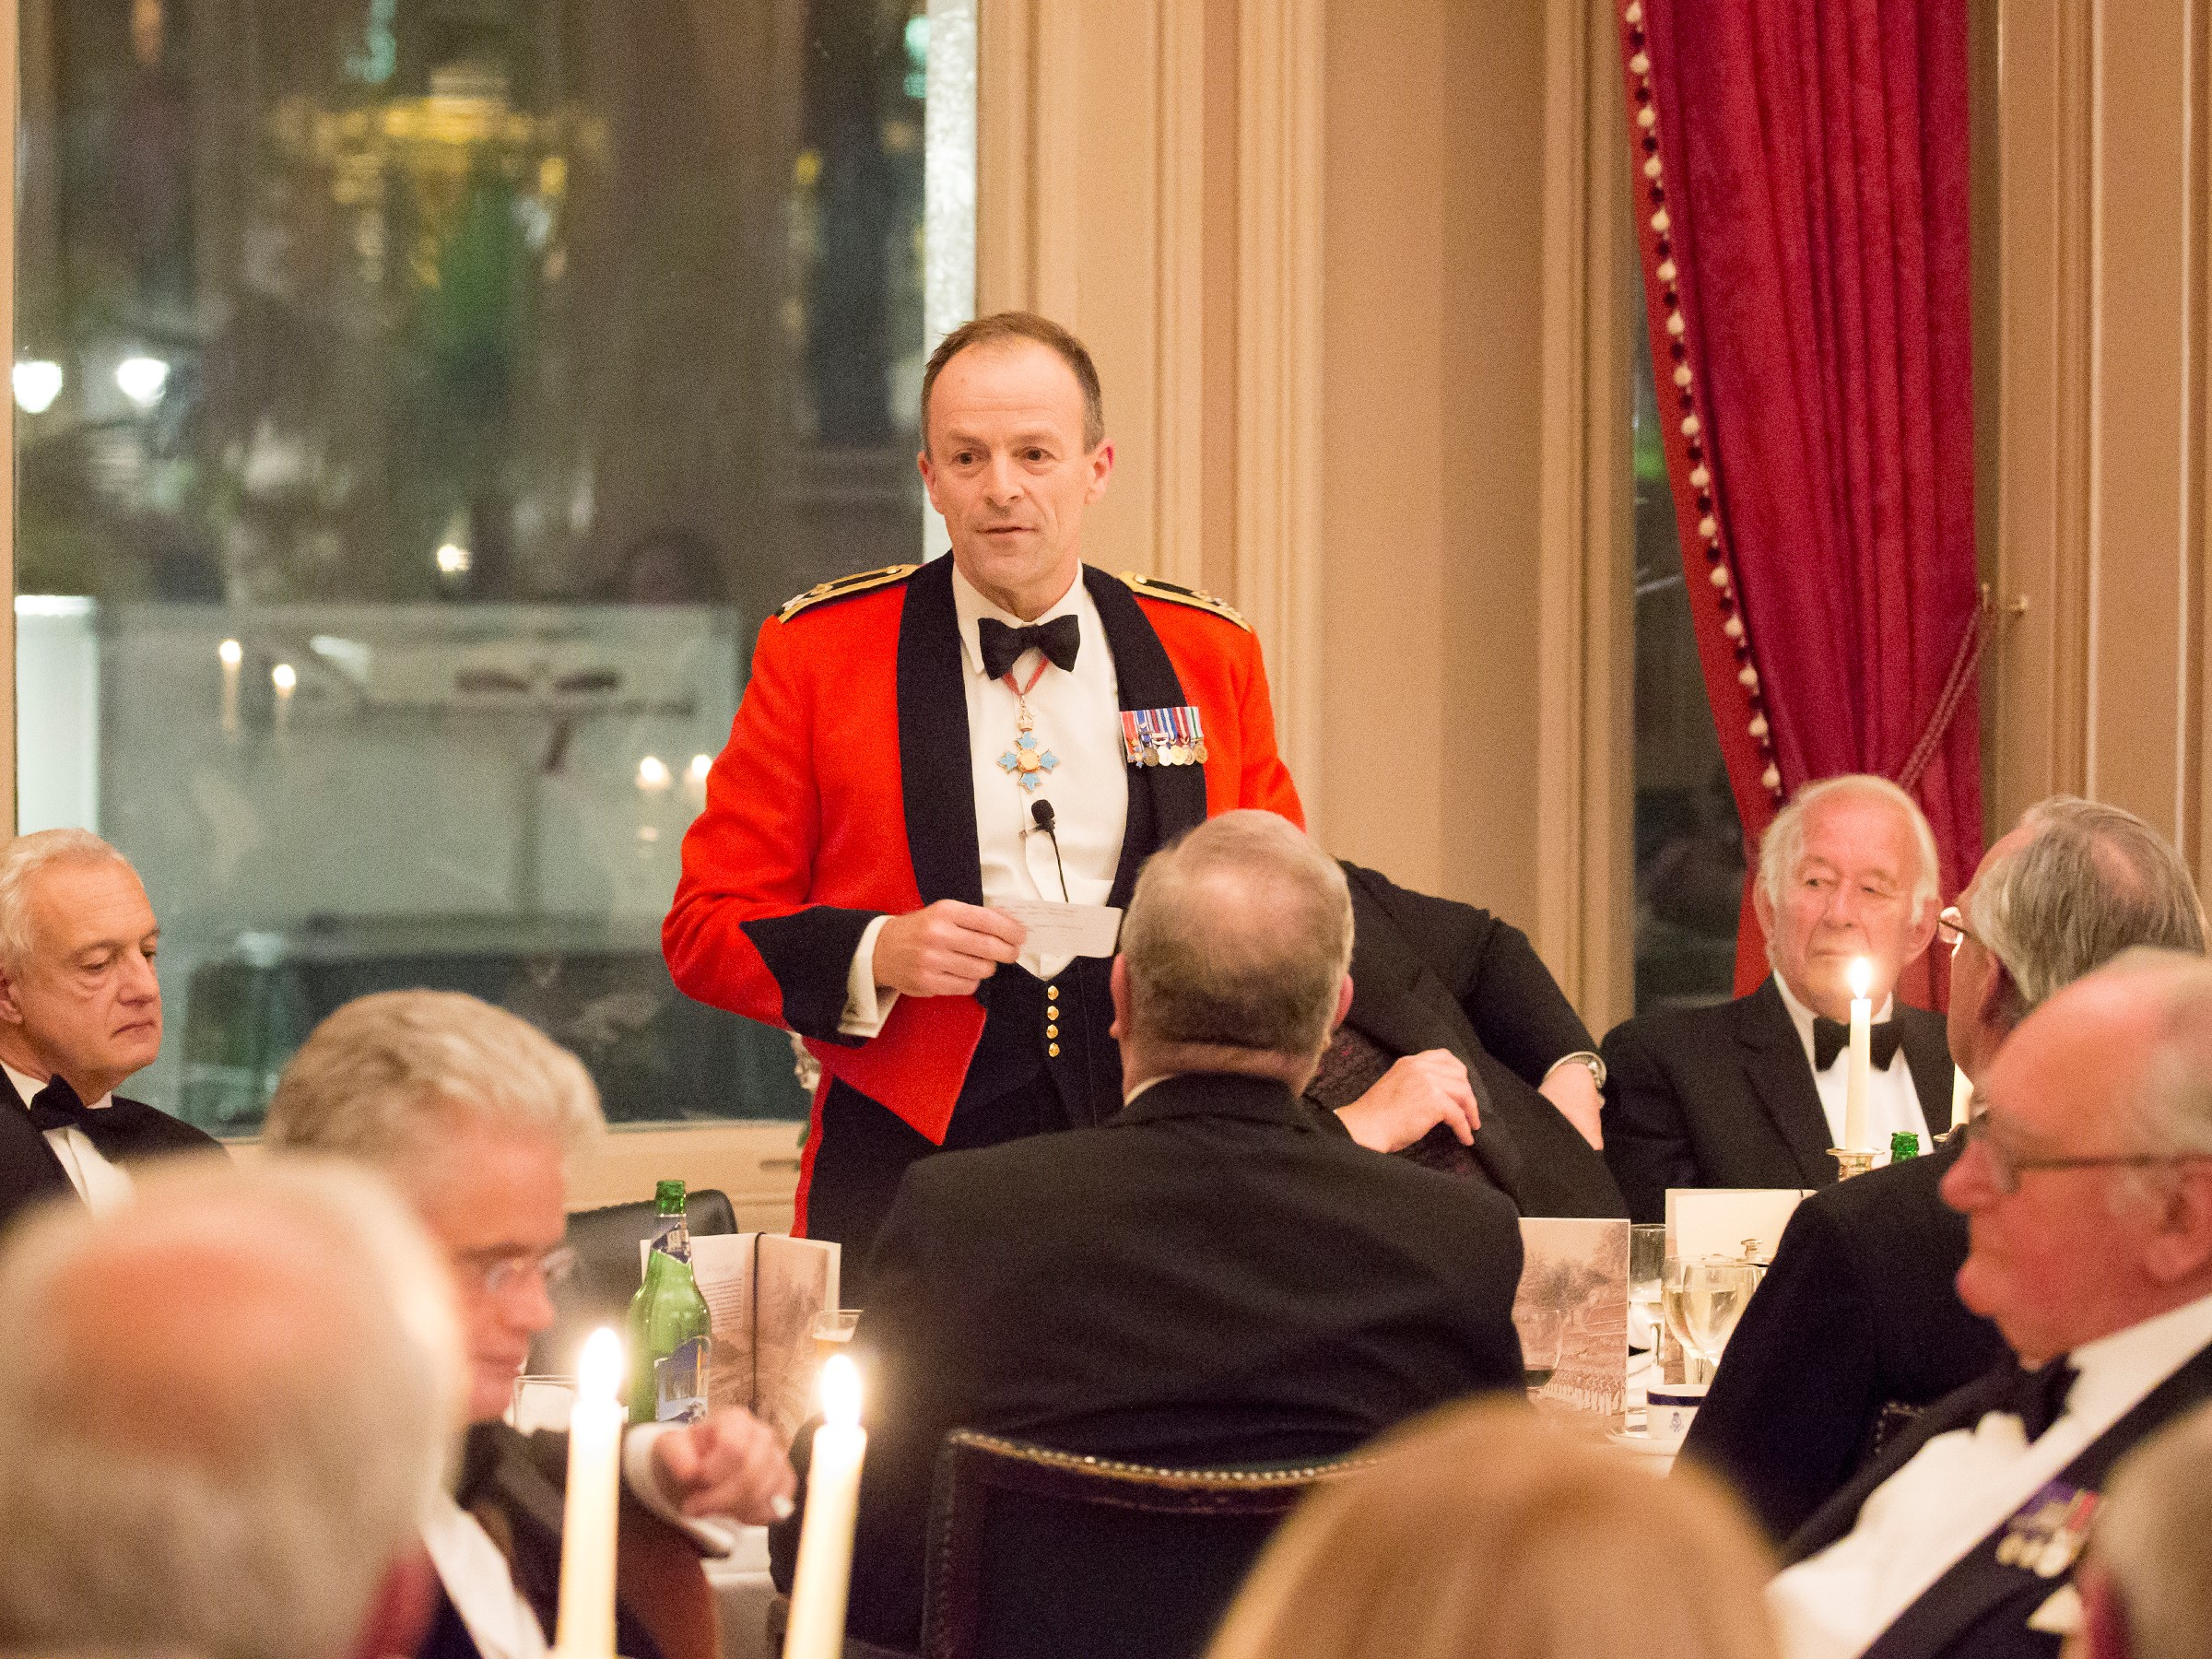 Major General Craig Lawrence CBE addressing members of the East India Club